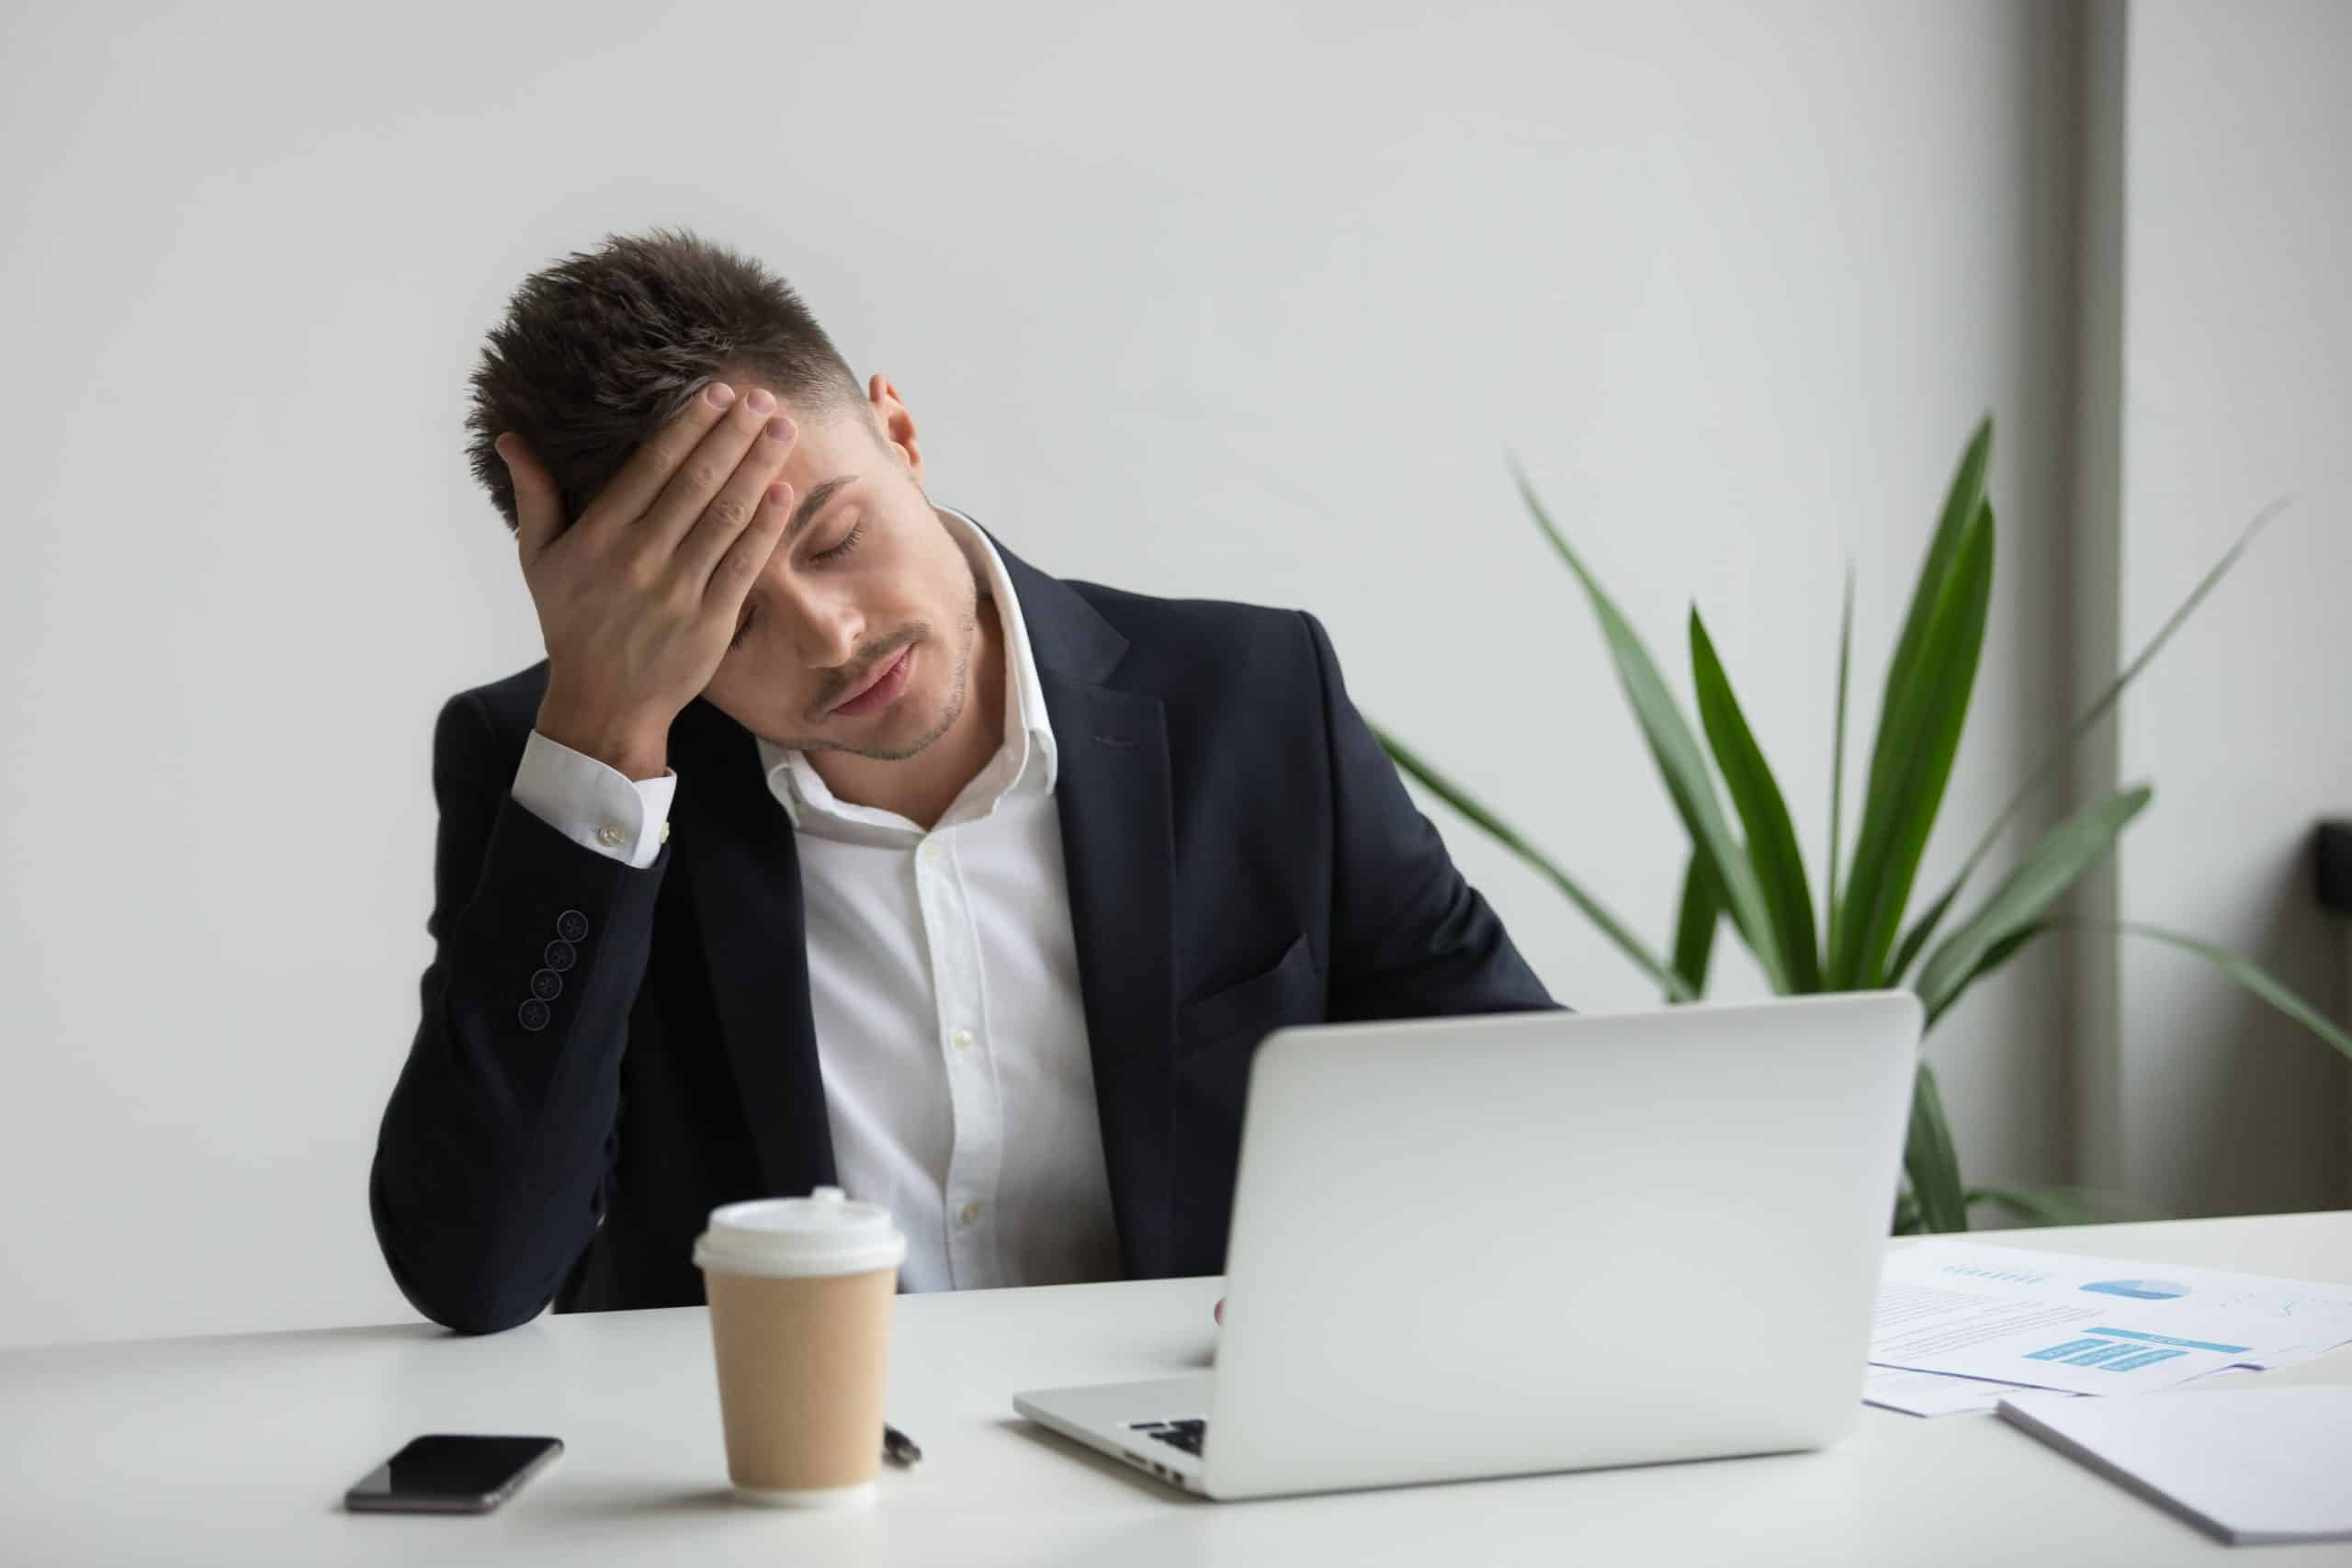 Frustrated businessman having strong headache